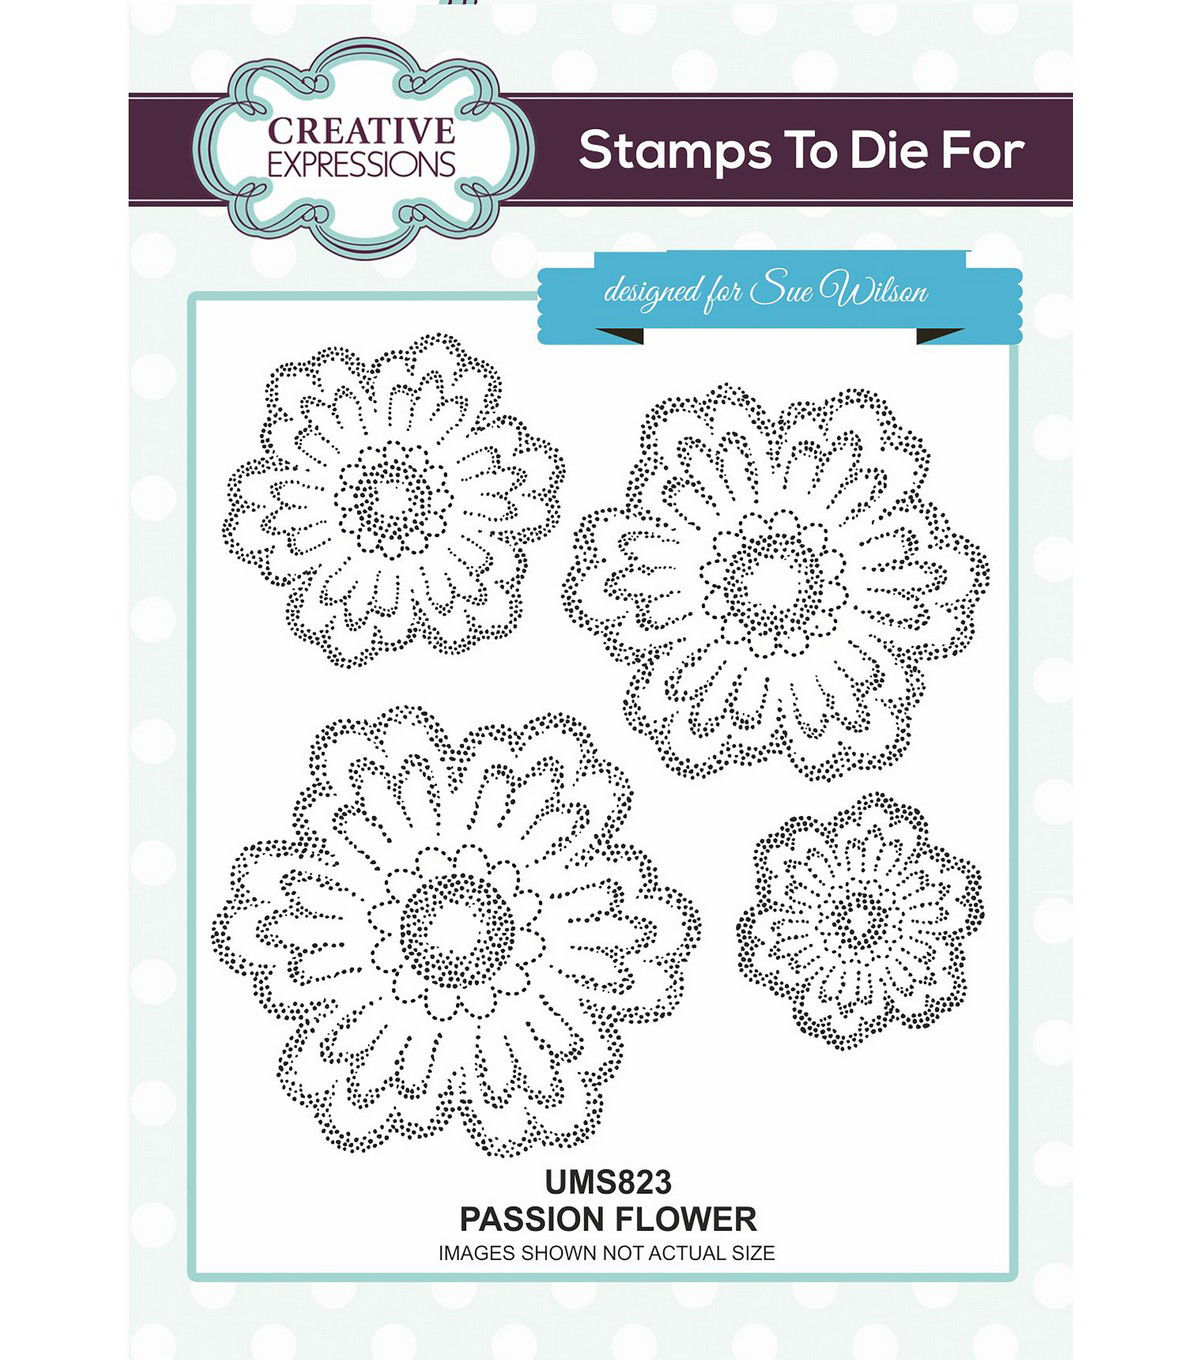 Creative Expressions Stamps To Die For 4 pk Stamps-Passion Flower